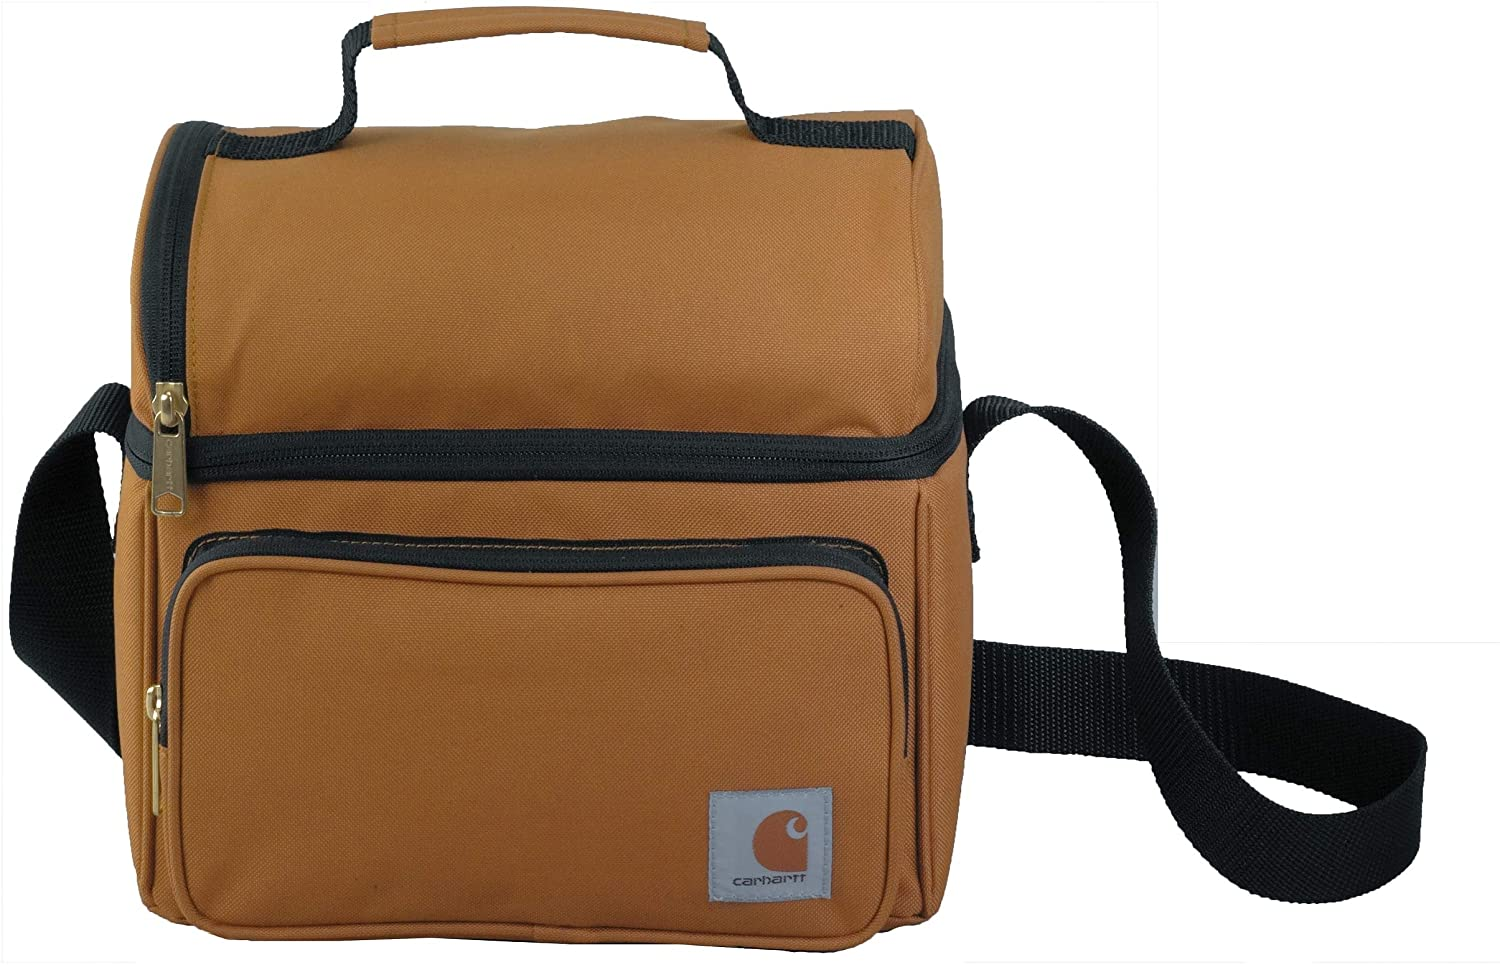 Carhartt Deluxe : un lunch bag marron sobre ultra résistant